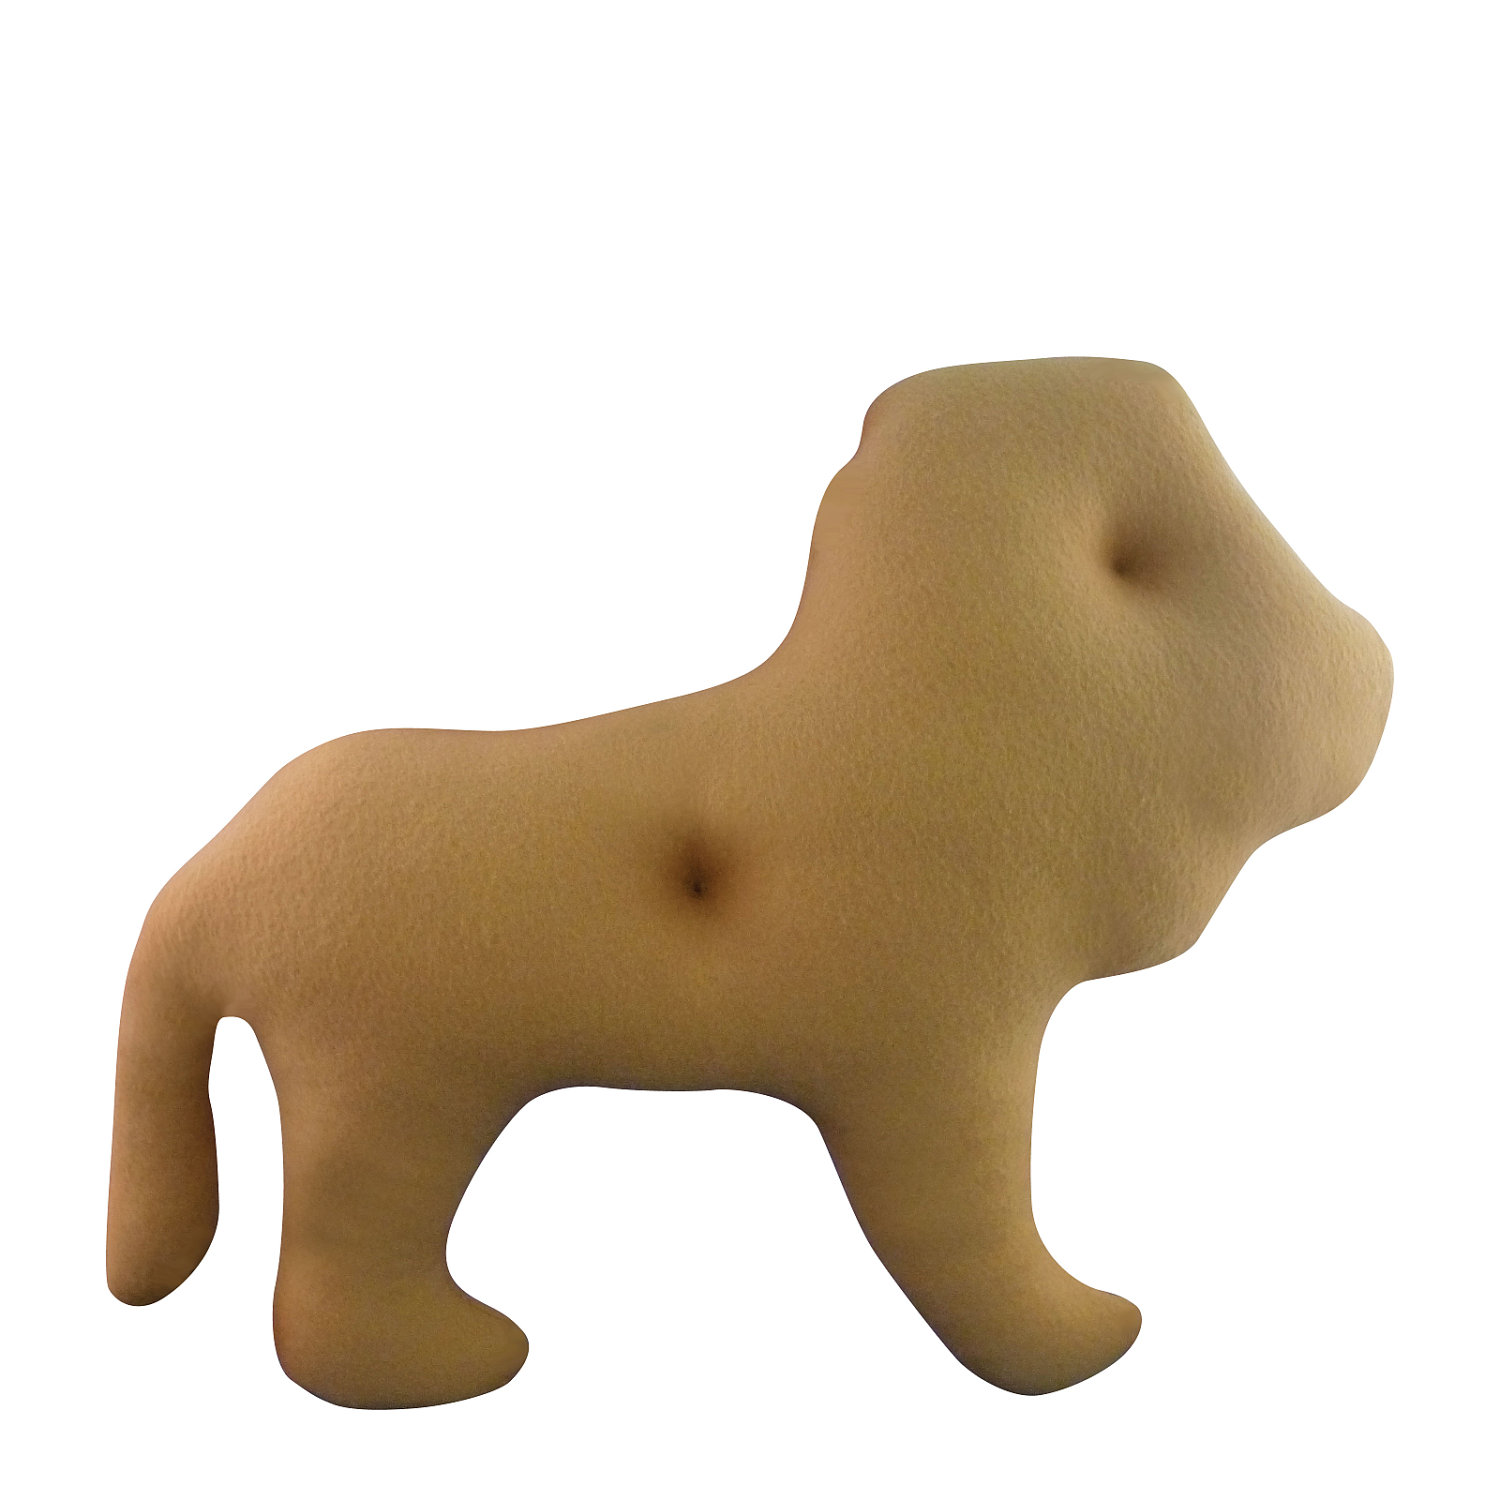 Free Animal Crackers Pictures, Download Free Clip Art, Free.